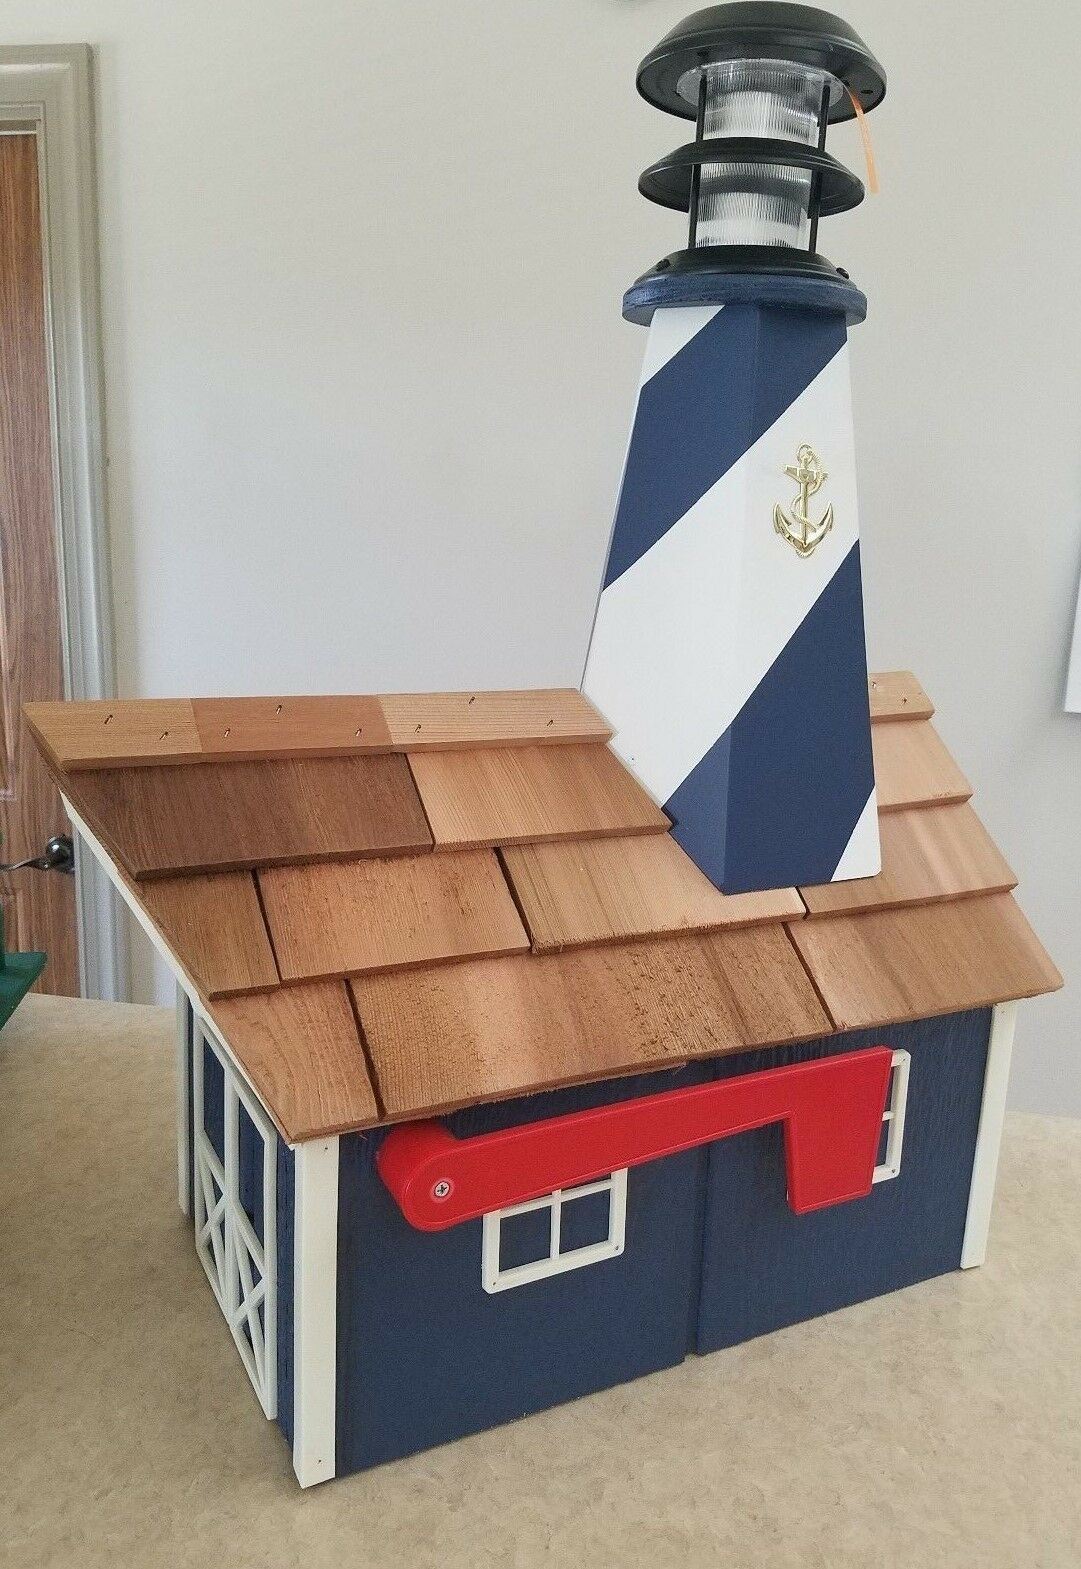 Amish Crafted Solar Powerot Lighthouse Mailbox - Lancaster, PA